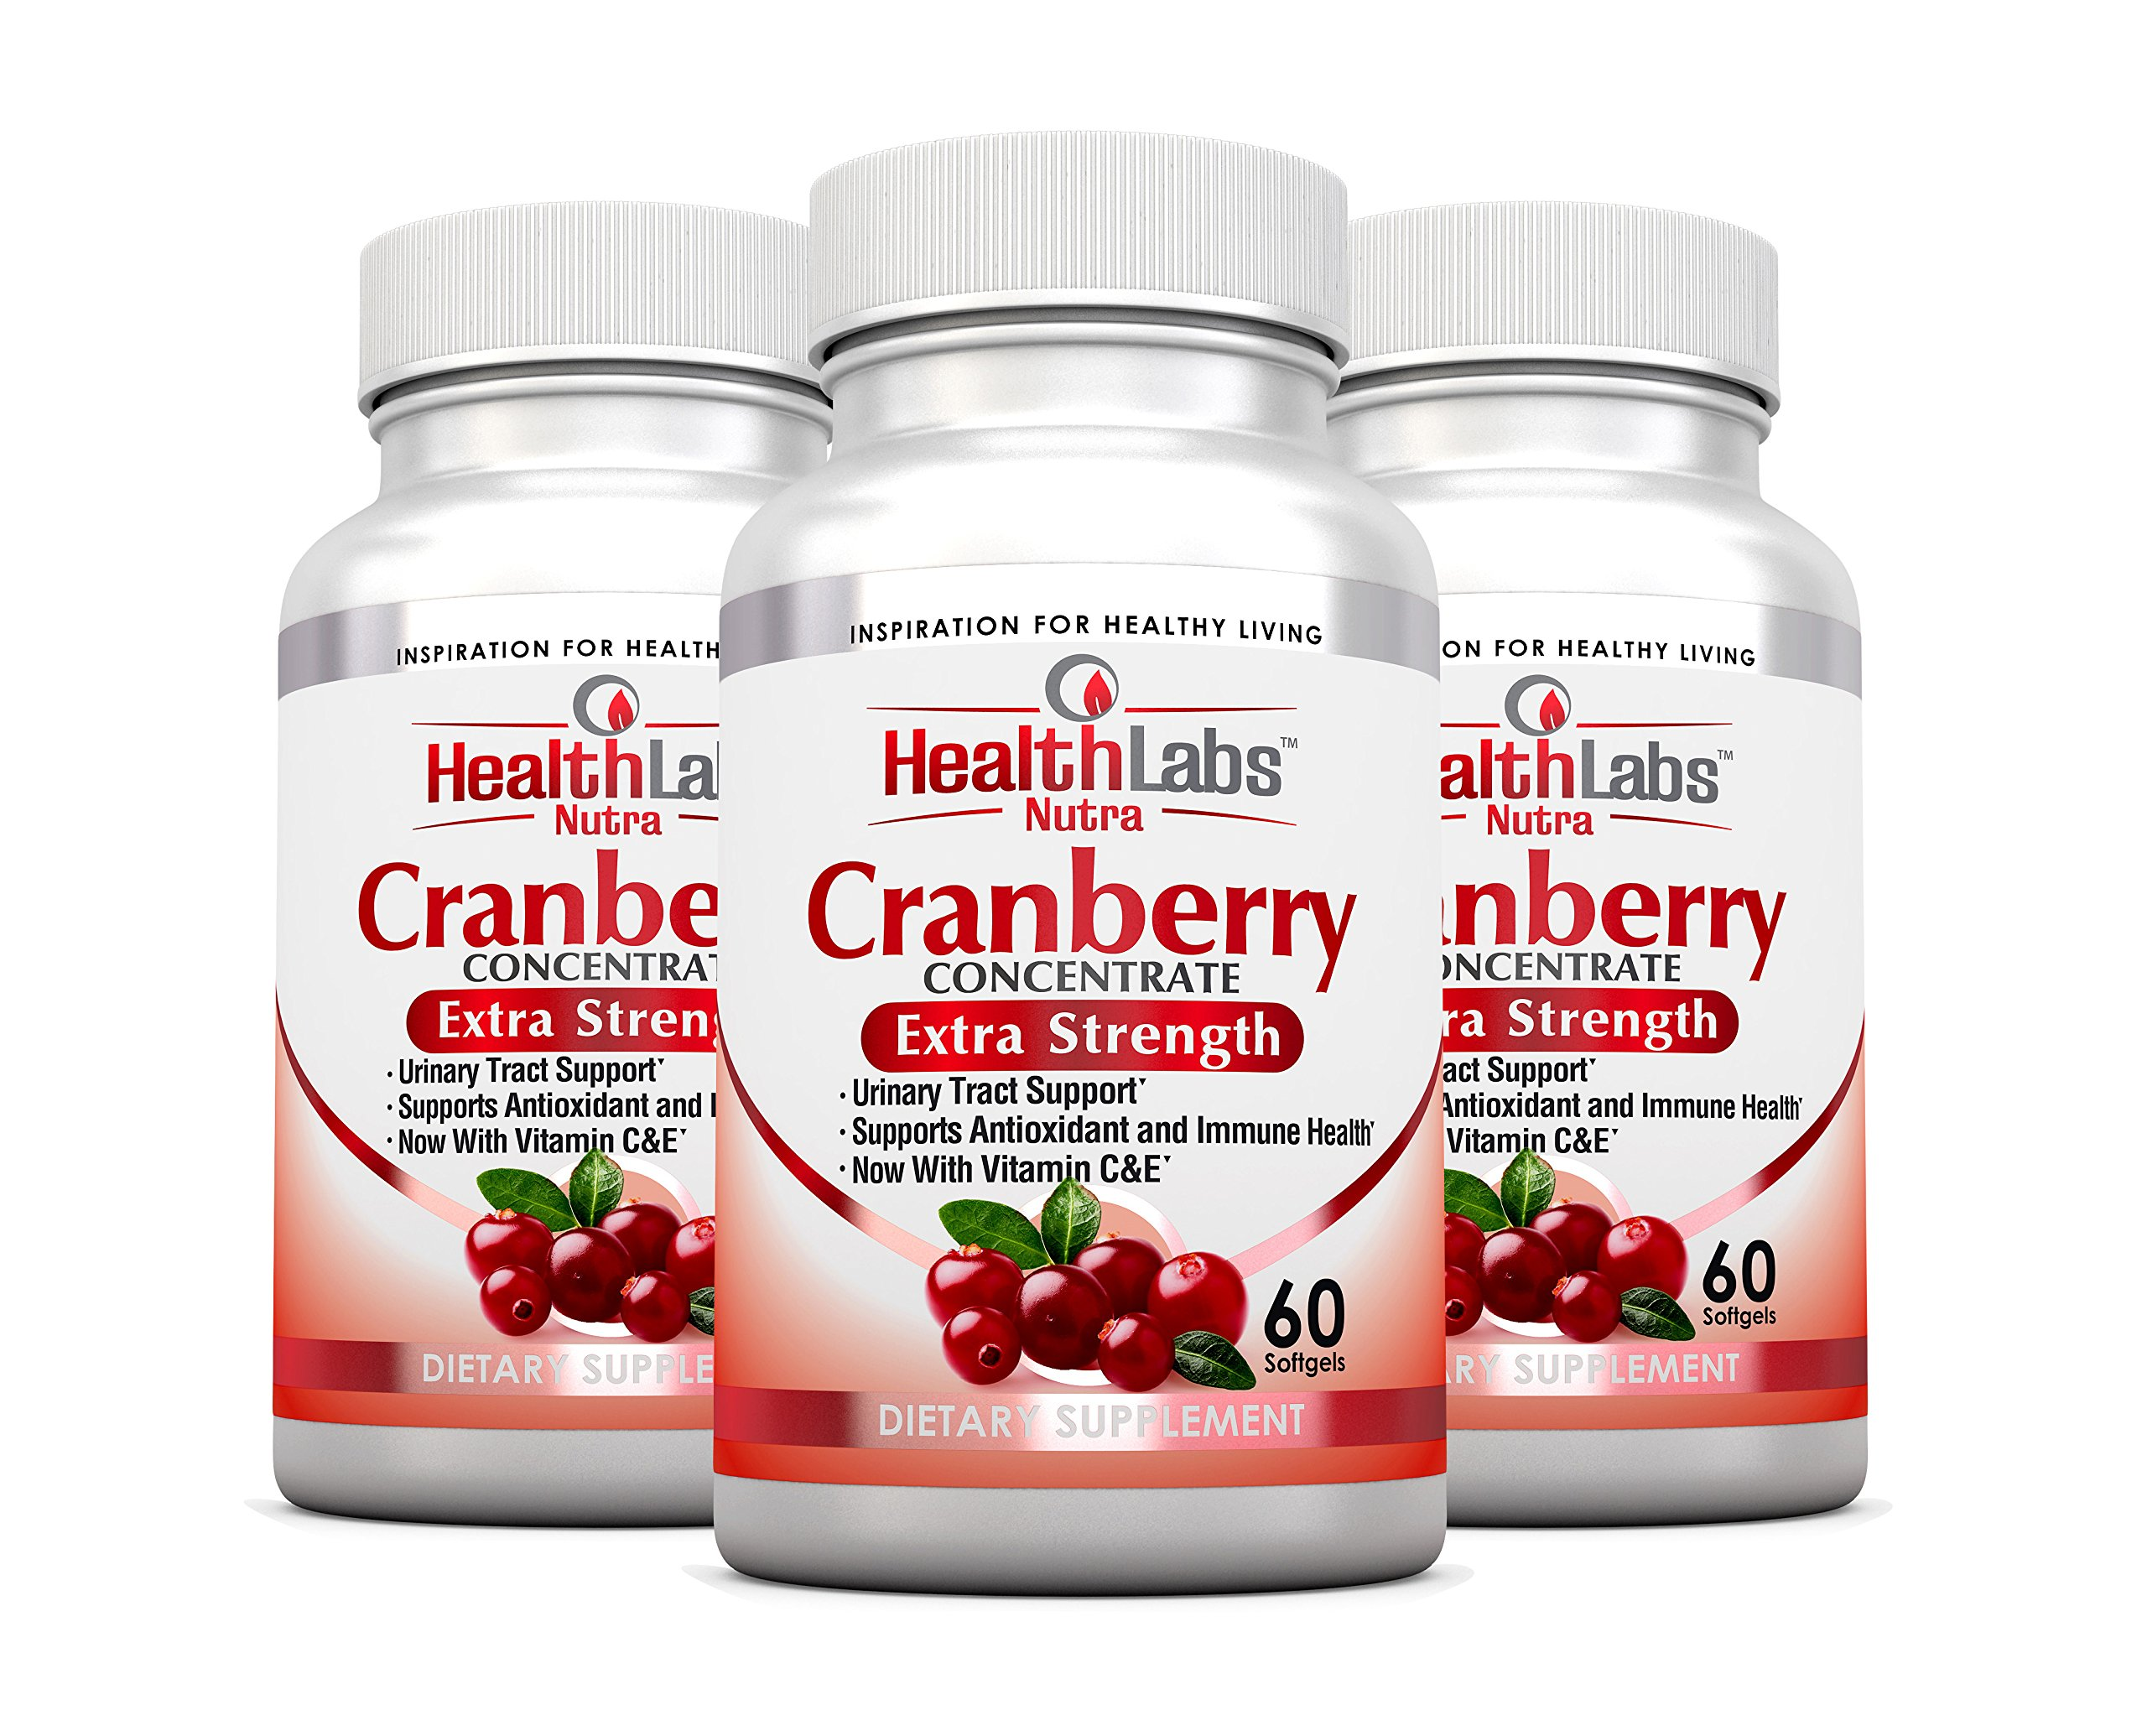 Health Labs Nutra 50:1 Triple-Strength Cranberry Concentrate 3-Month Supply with Vitamins C & E – Promotes Urinary Tract and Immune Support- (Pack of 3)